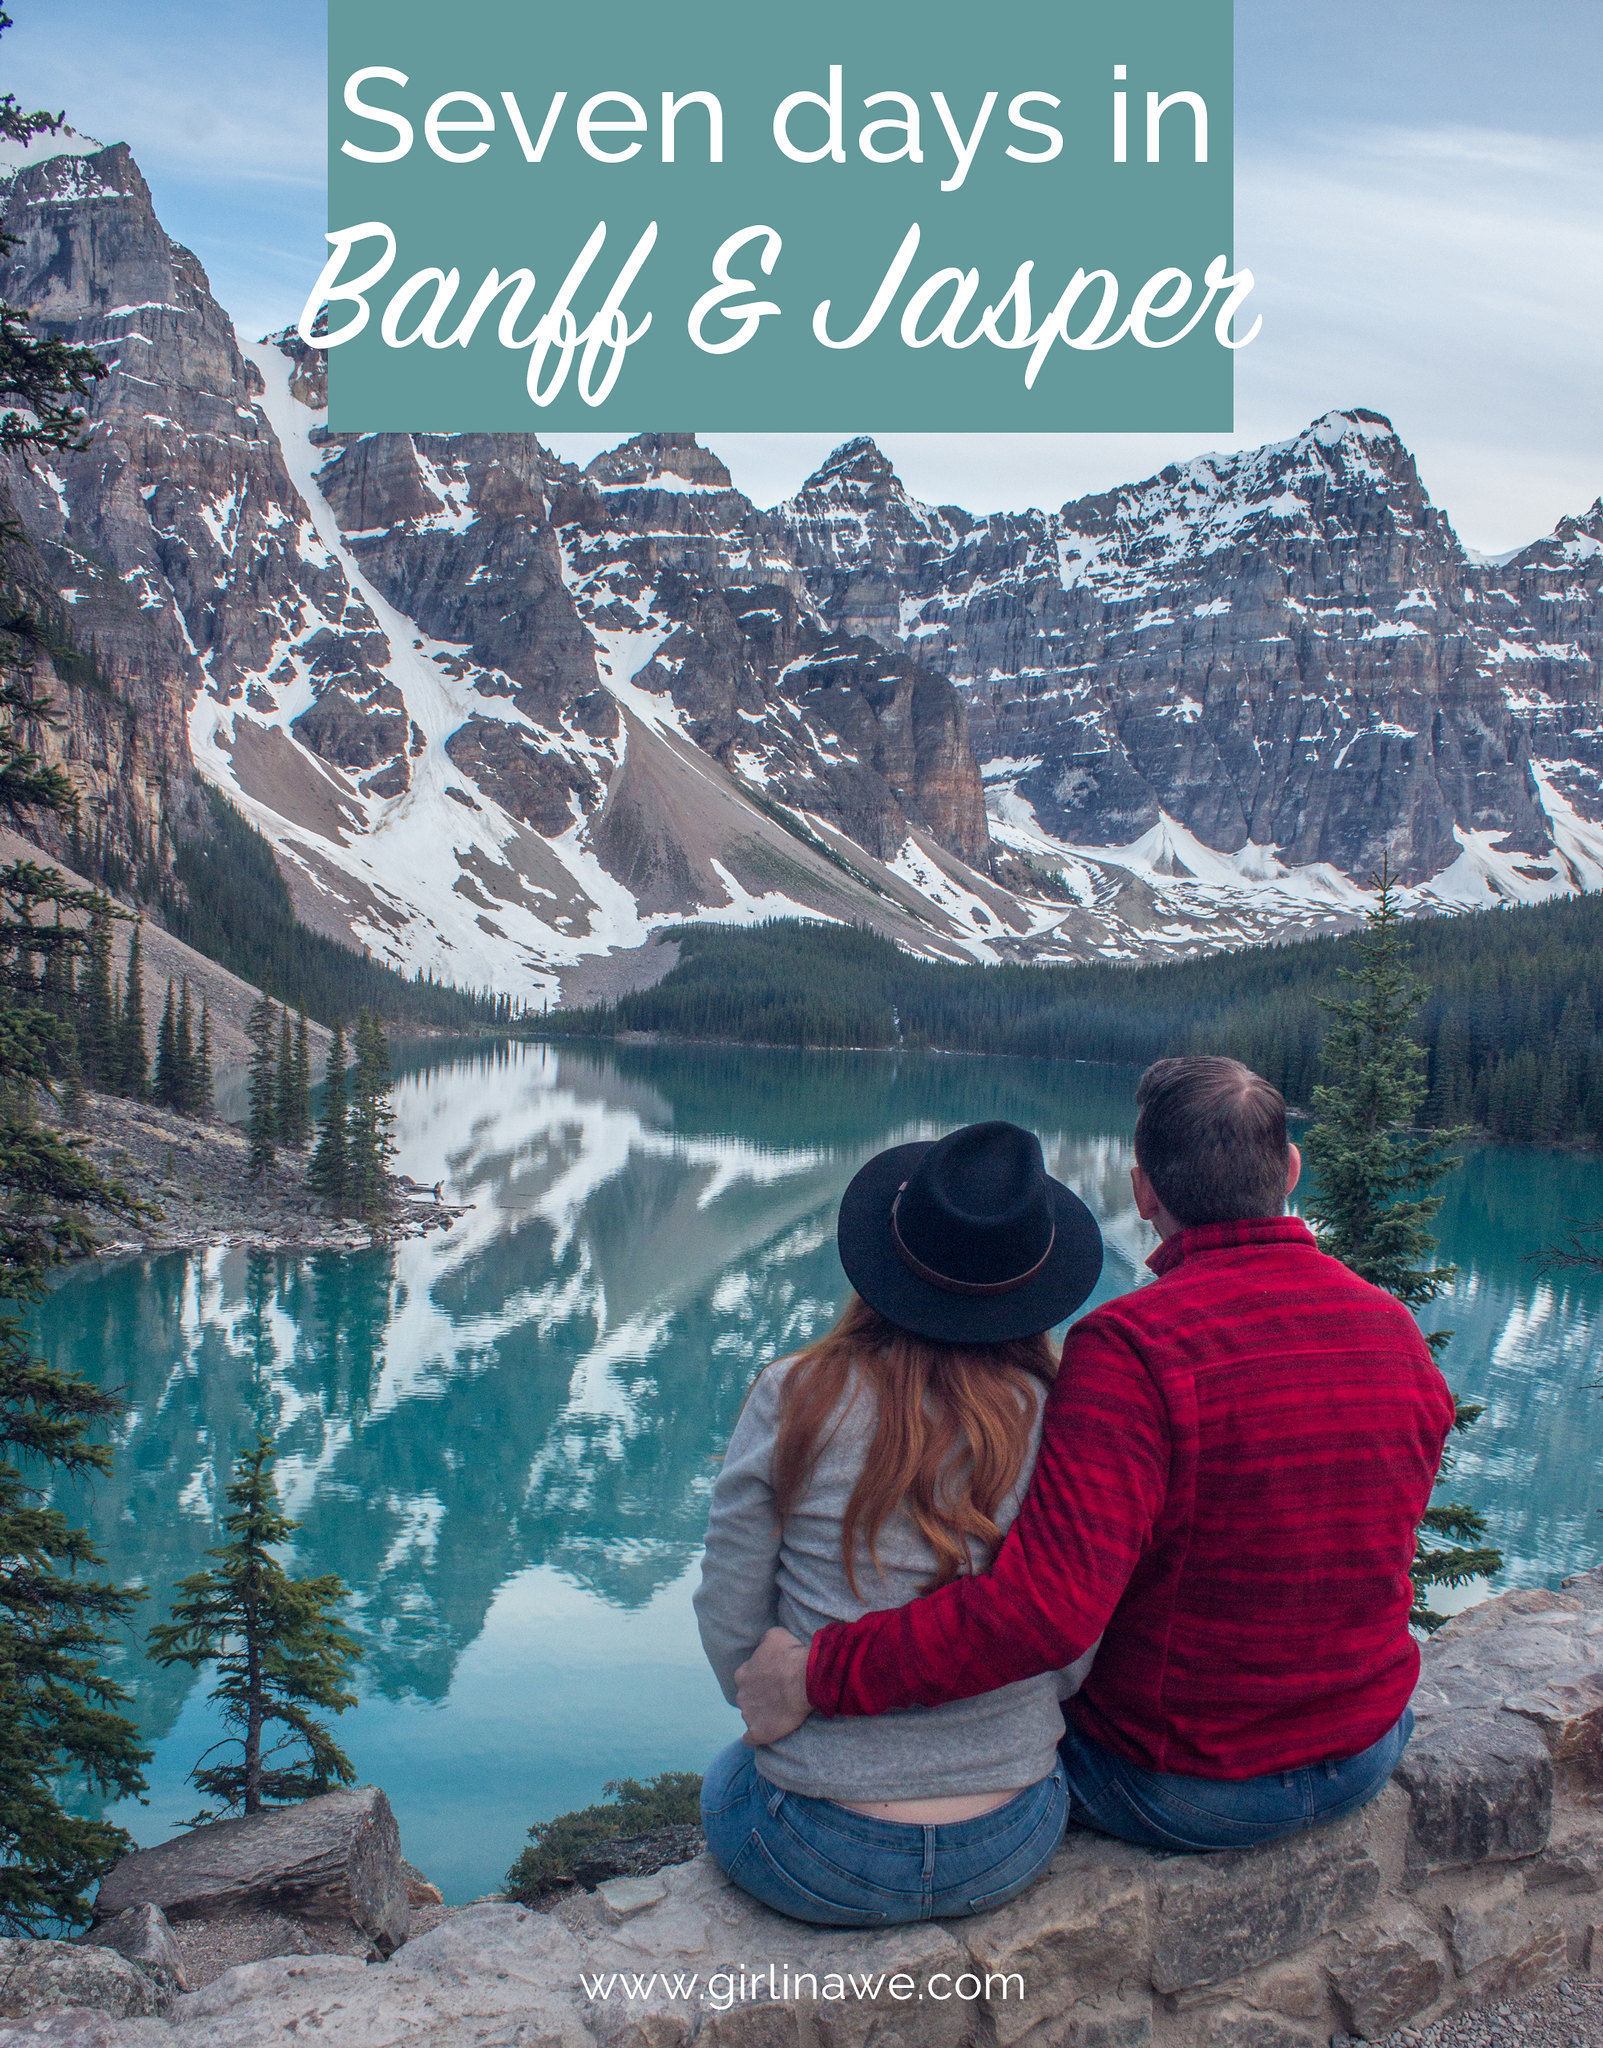 7 days in Banff & Jasper, Alberta